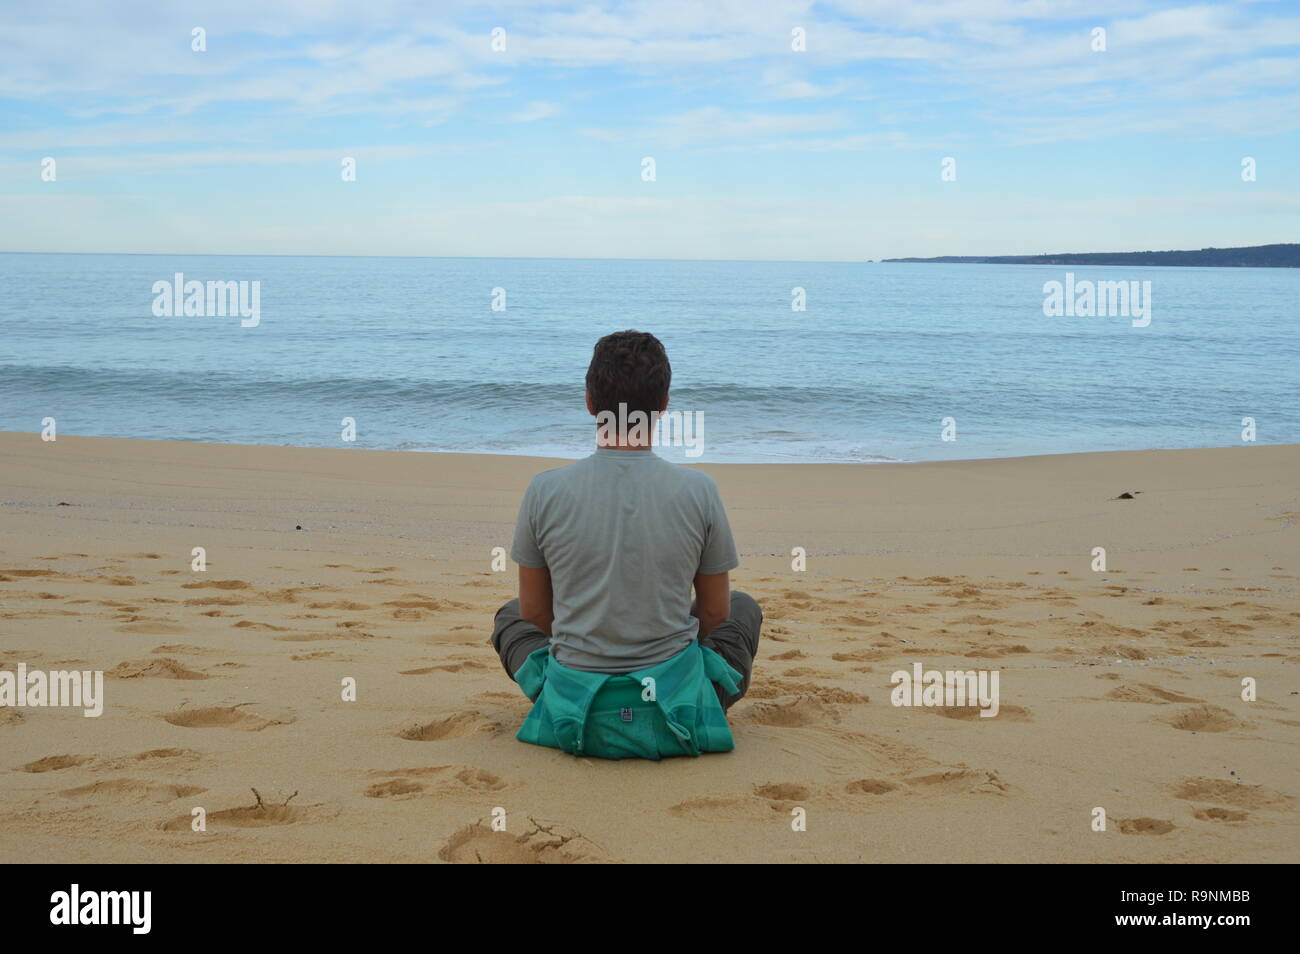 Man sitting cross legged, gazing out to sea, relaxing and thinking about the world. - Stock Image